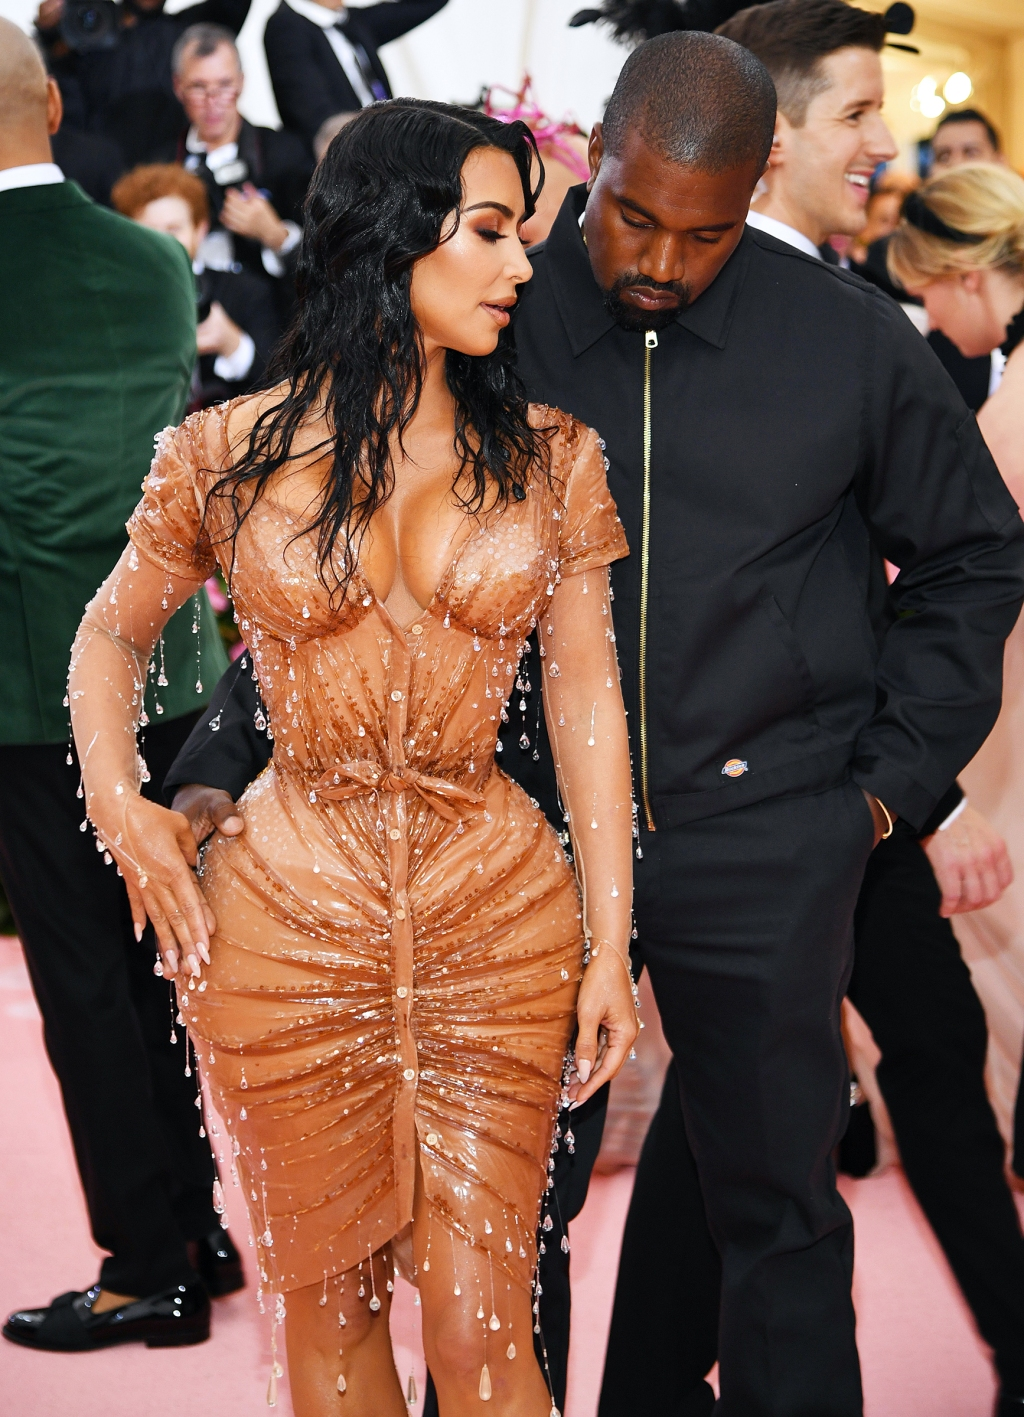 Kim Kardashian West (L) and Kanye West attend The 2019 Met Gala Celebrating Camp: Notes on Fashion at Metropolitan Museum of Art on May 06, 2019 in New York City.